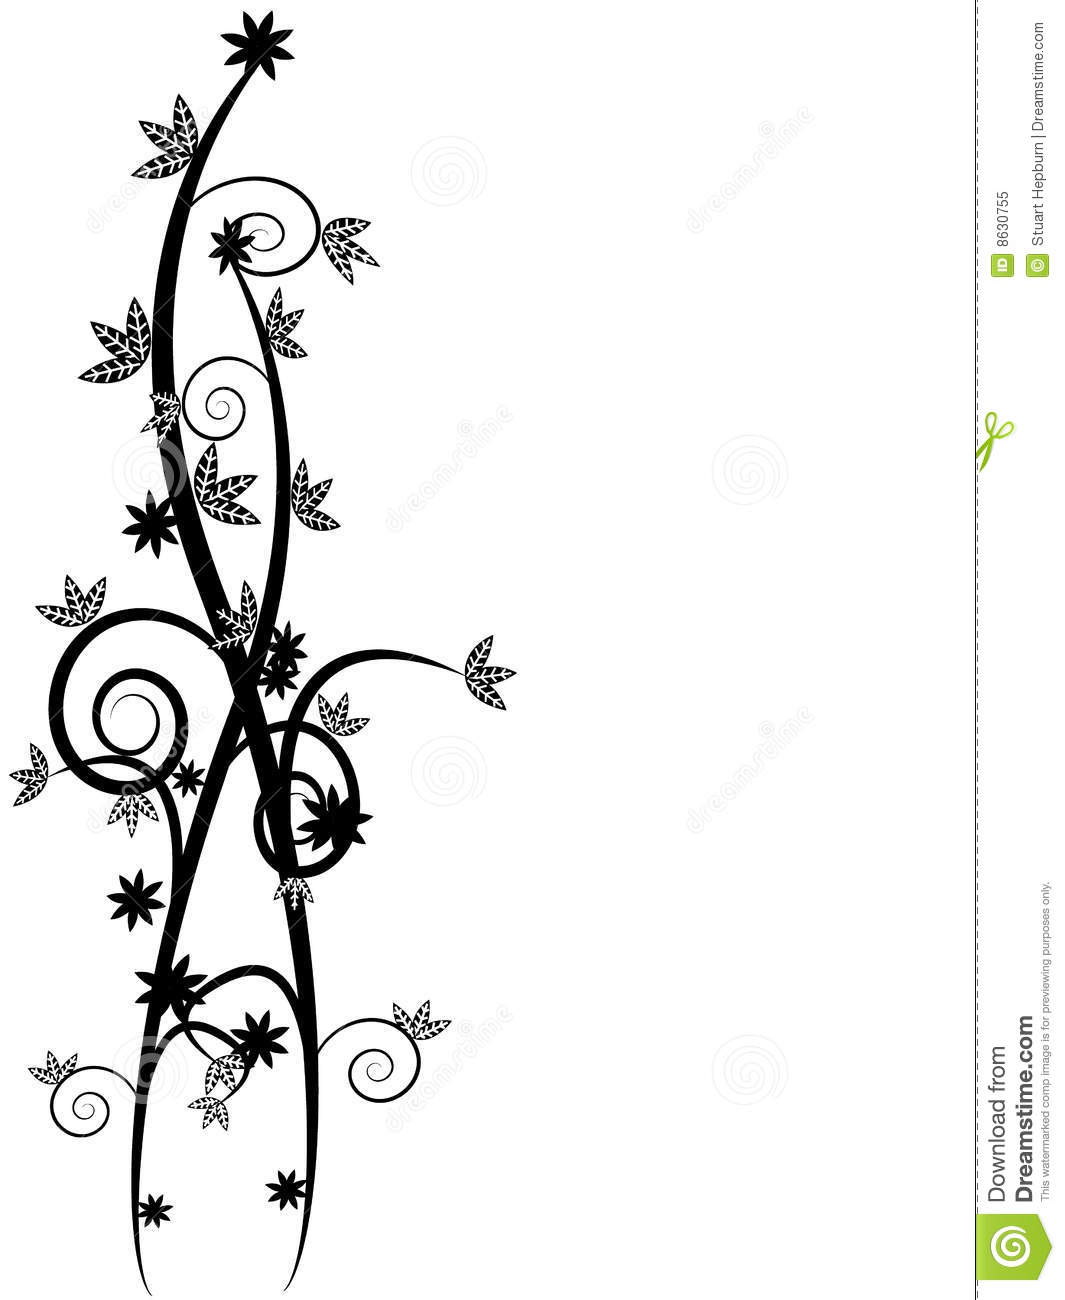 Black Flower And Vines Pattern Royalty Free Stock Image: Floral Vines Stock Vector. Image Of Nature, Decorative